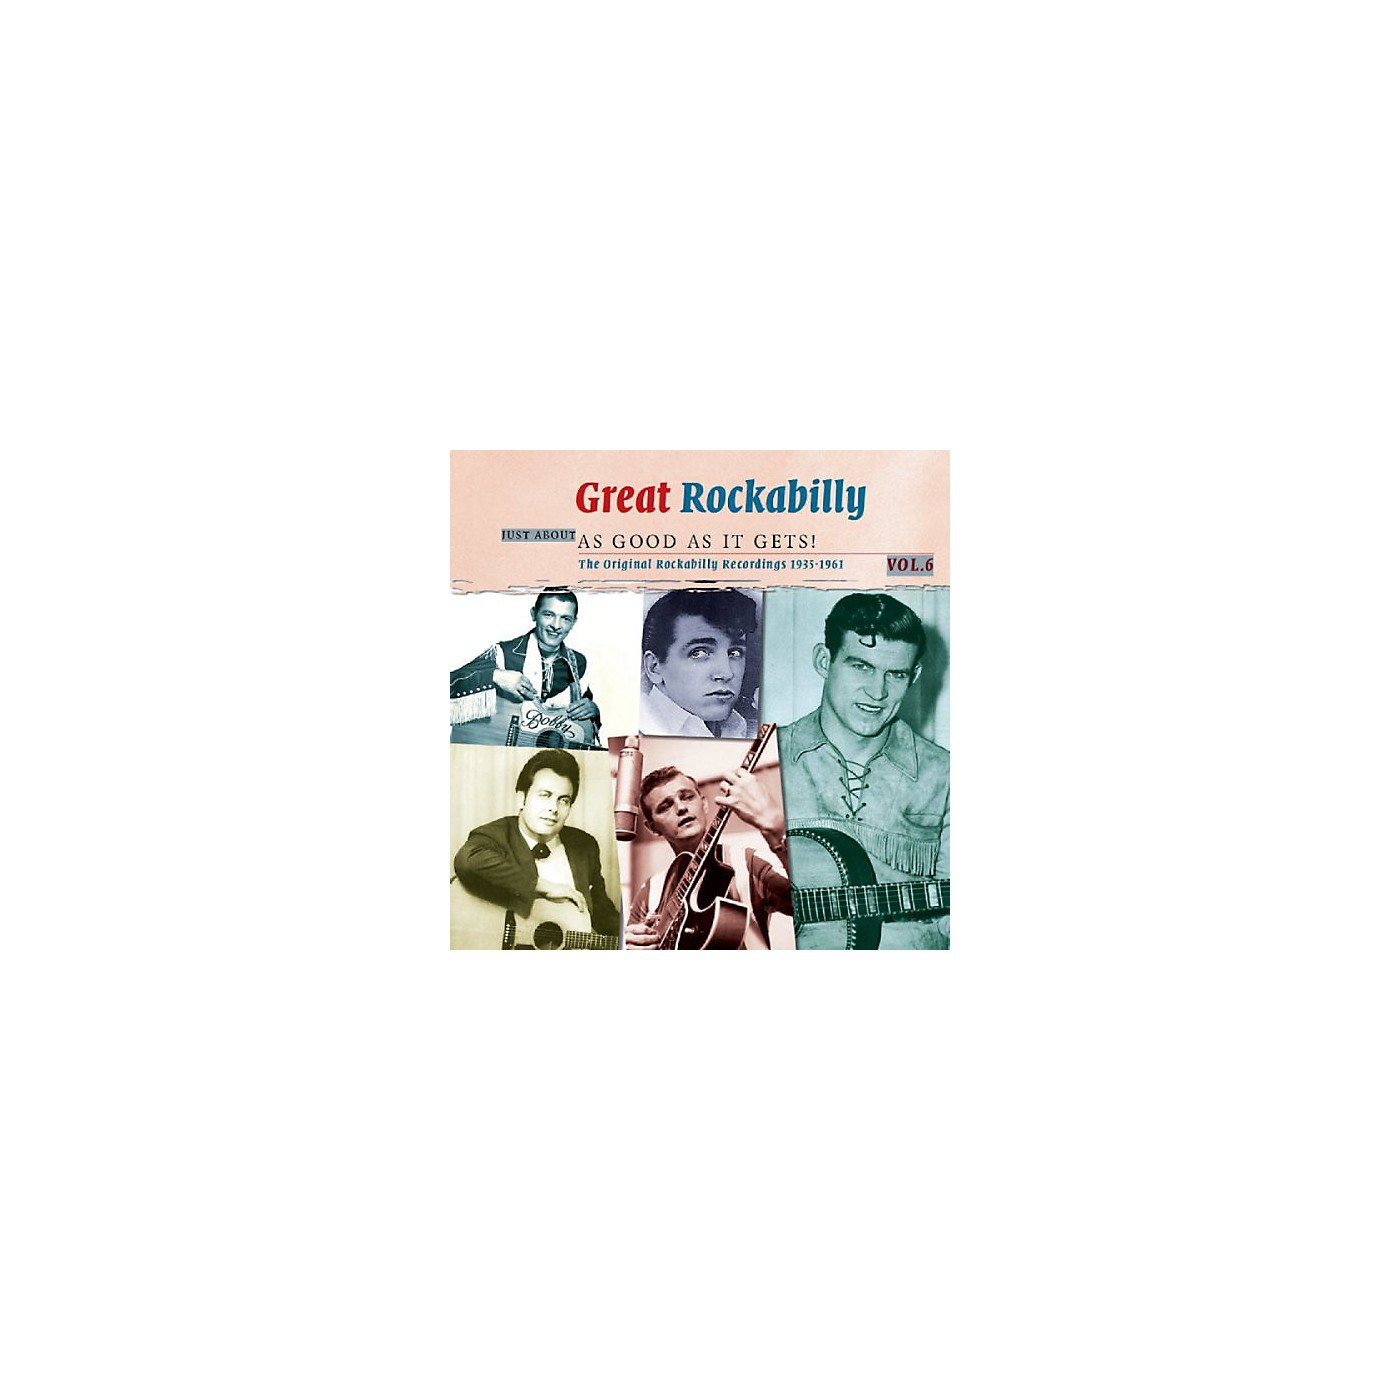 Alliance Great Rockabilly Just About as Good as It Gets! - Great Rockabilly Just About As Good As It Gets! thumbnail